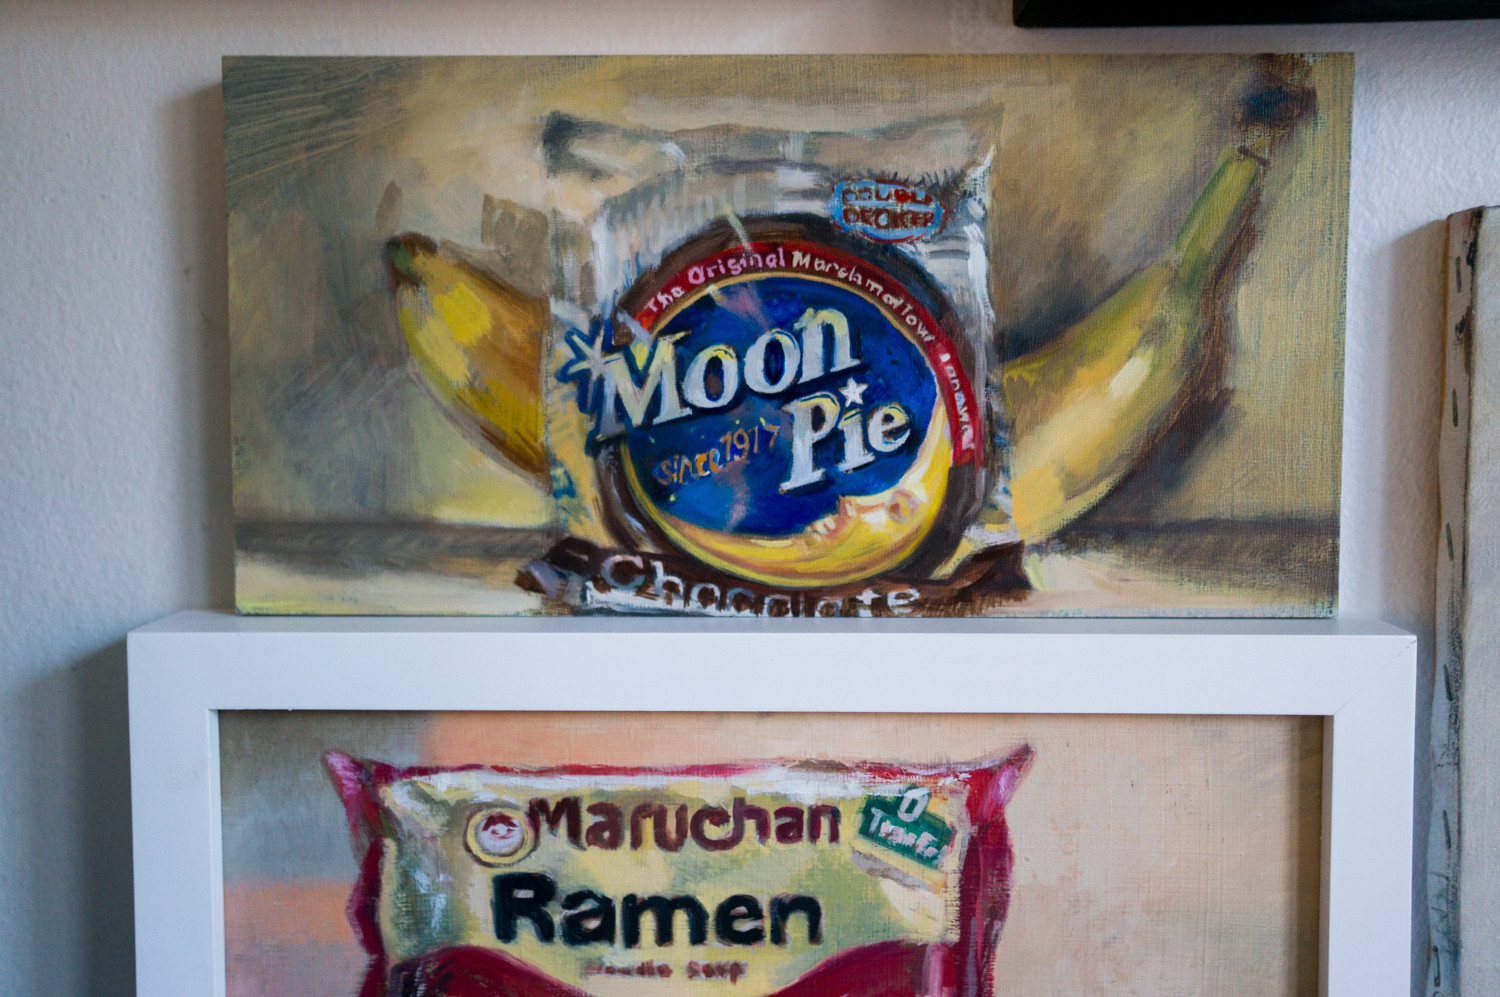 The paintings in Noelle Knight's exhibition 'Food Values' pair healthy foods with unhealthy ones. The exhibition is on view at The Riverdale Y until Jan. 31.